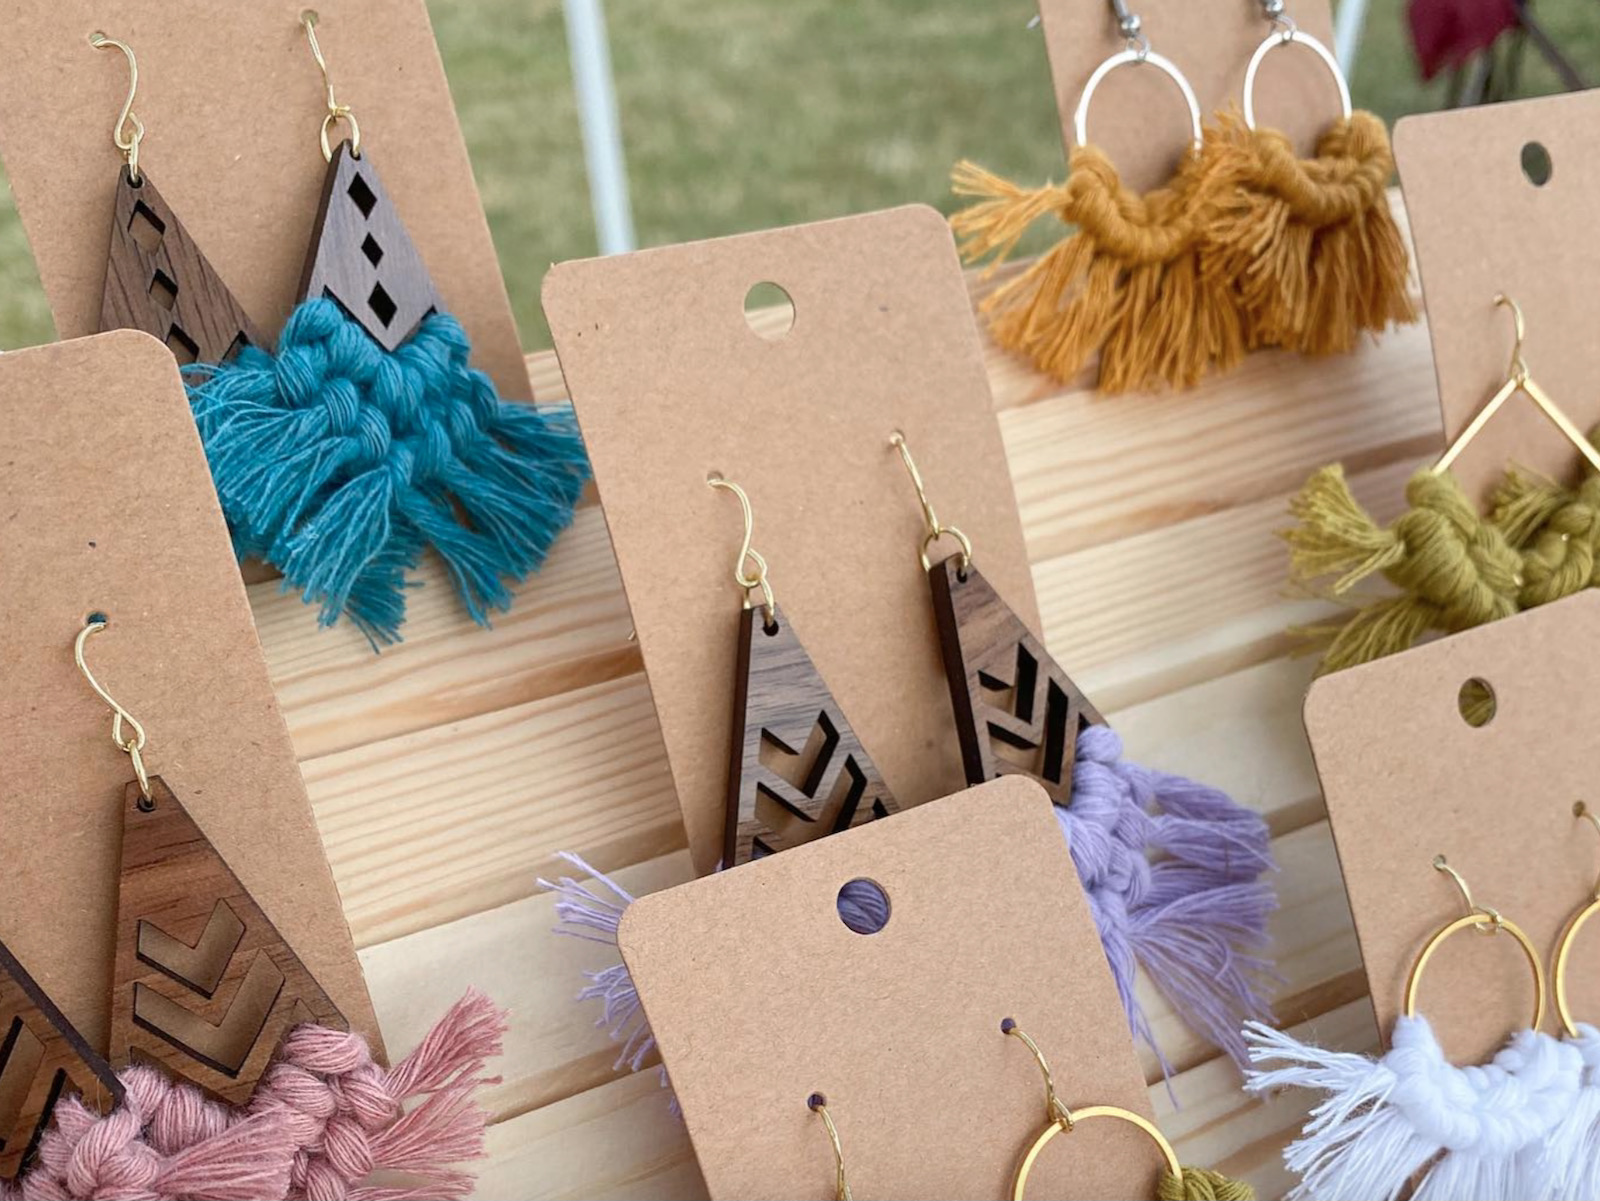 T is for Textile earrings